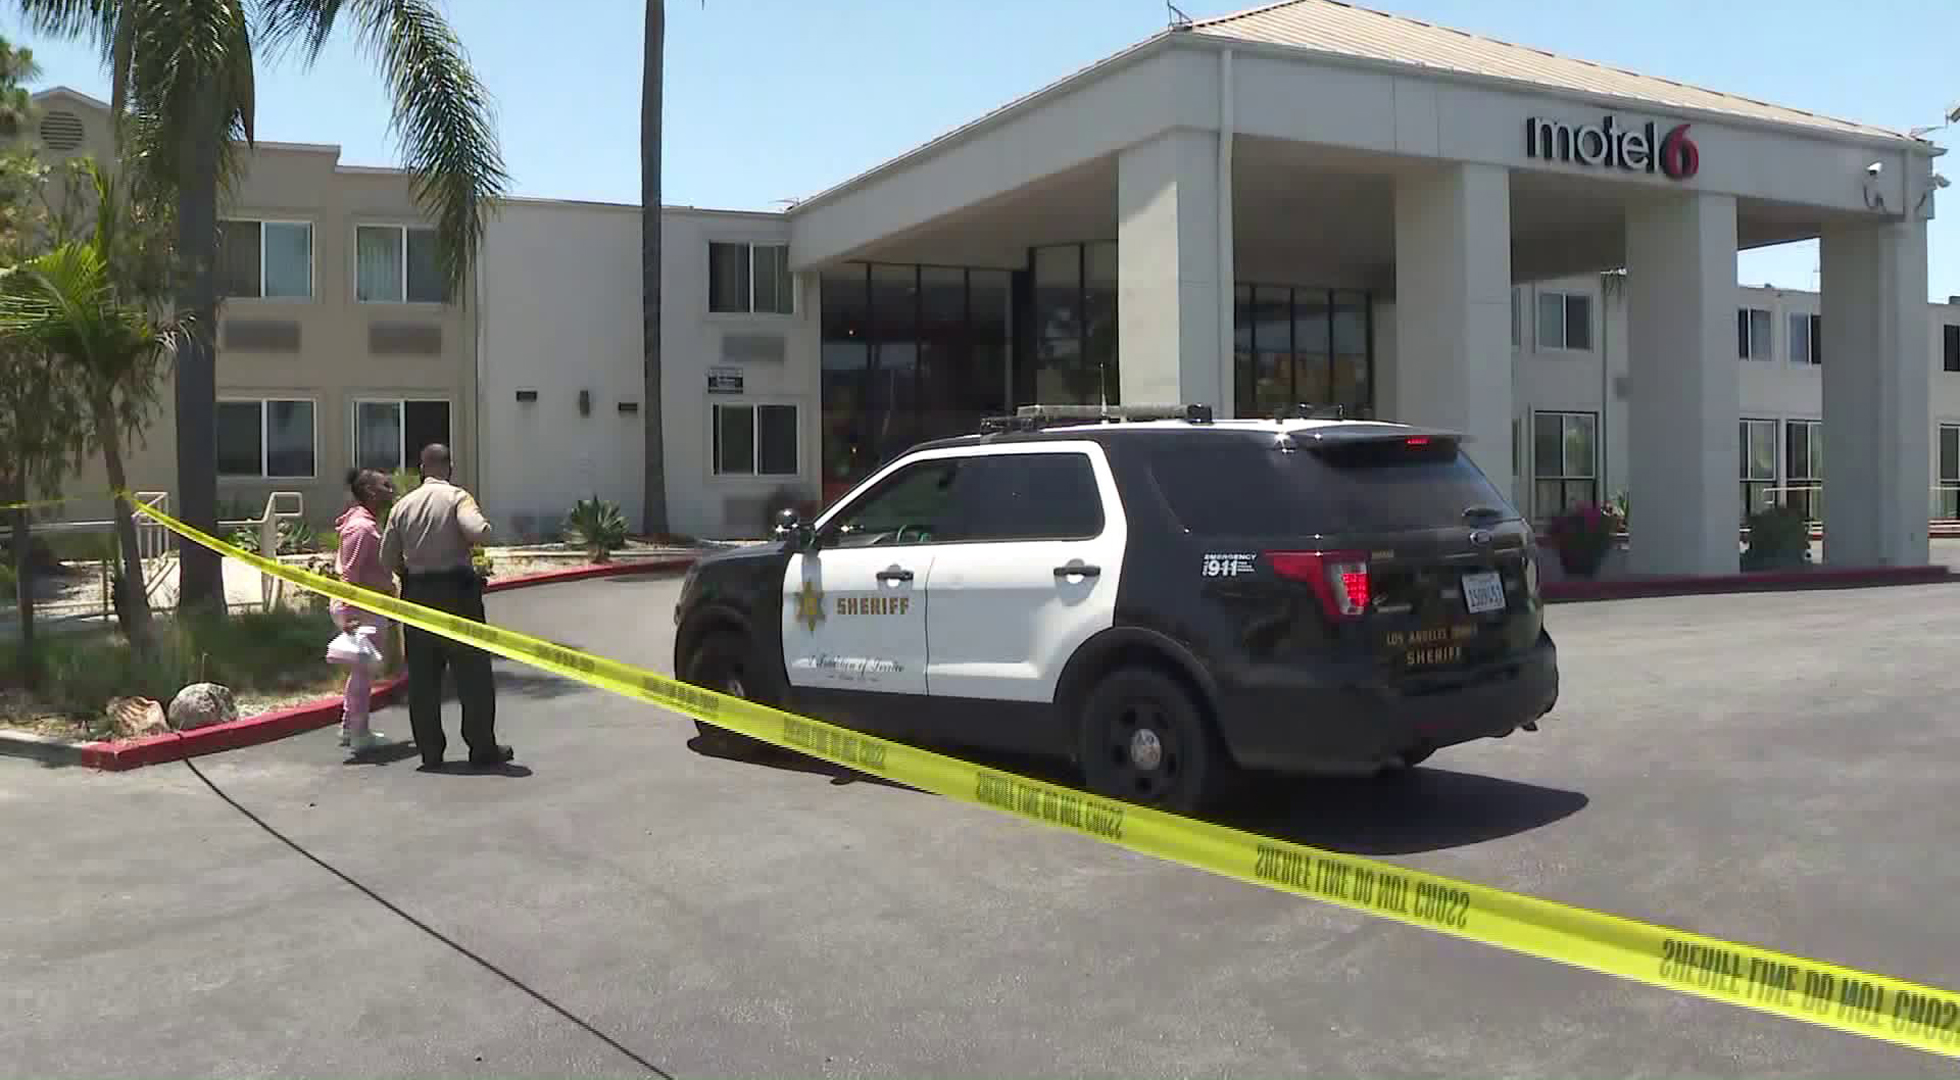 The parking lot of a Motel 6 in Carson was cordoned off after a man was found stabbed to death on May 28, 2020. (KTLA)